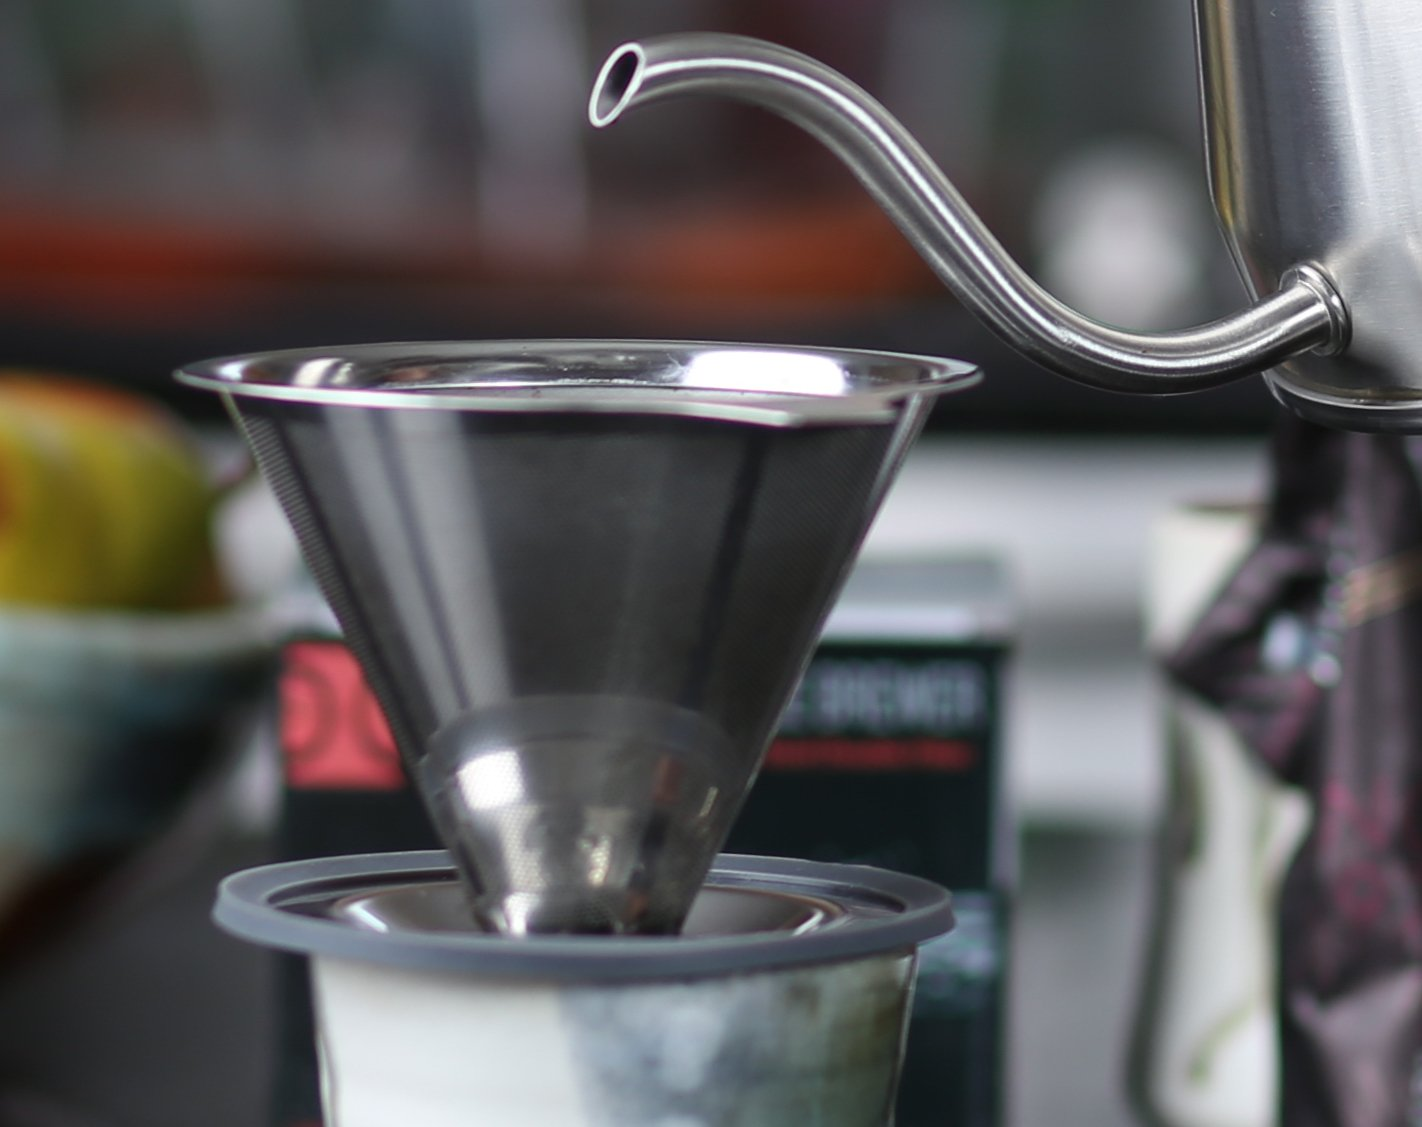 by The Elan Collective Makes 1-4 Cups Pour Over Coffee Essentials Brewing Set Pour Over Brewers Kettle /& Stainless Steel Pour Over Coffee Brewer Directions /& Tips Card Polishing Cloth